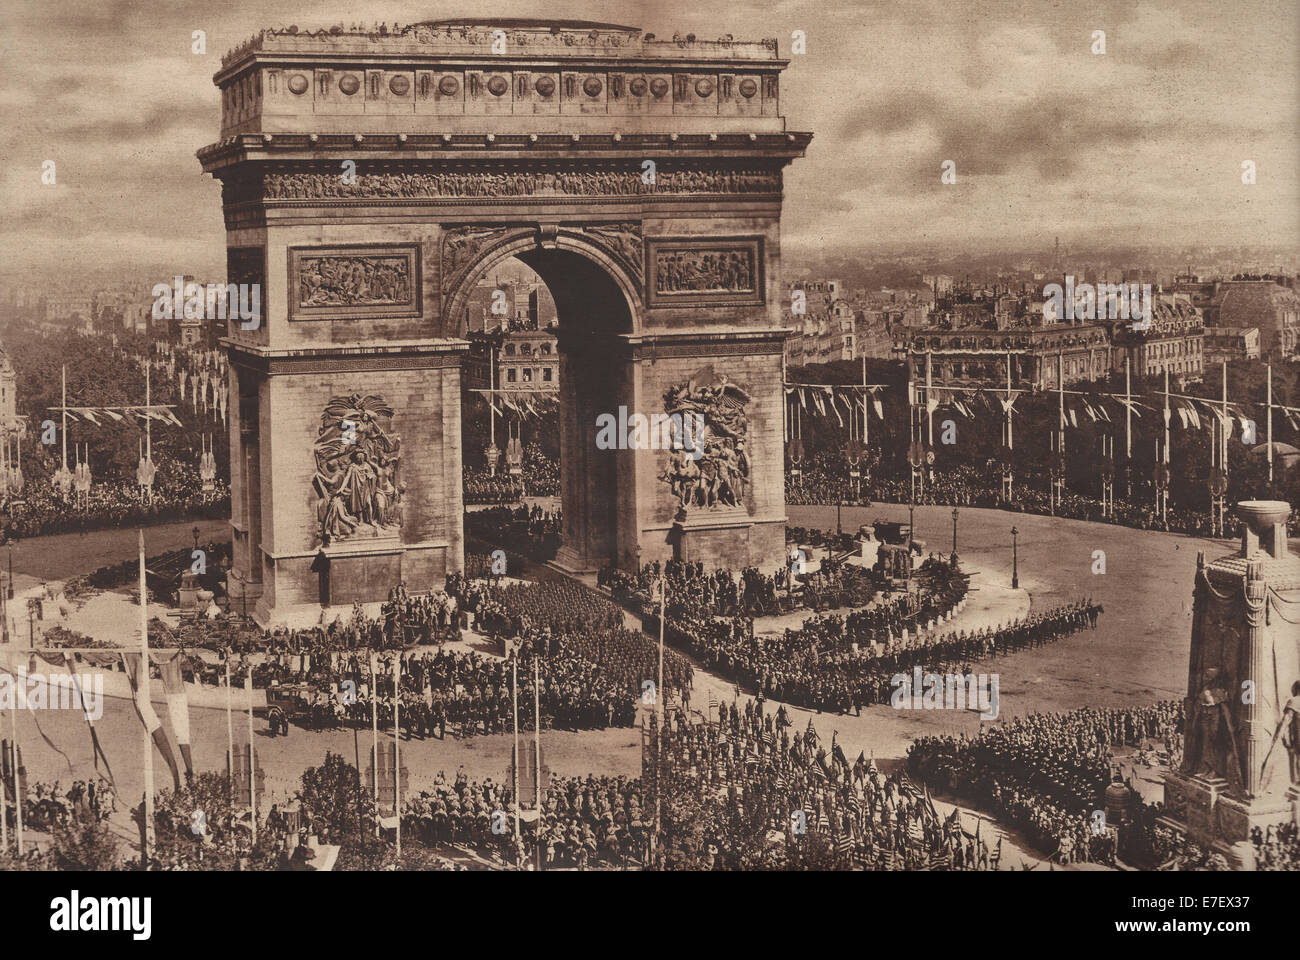 Magnificent Victory Parade passing through the Arc de Triomphe, Paris, July 14, 1919 - Conquerers in the Great War - Stock Image